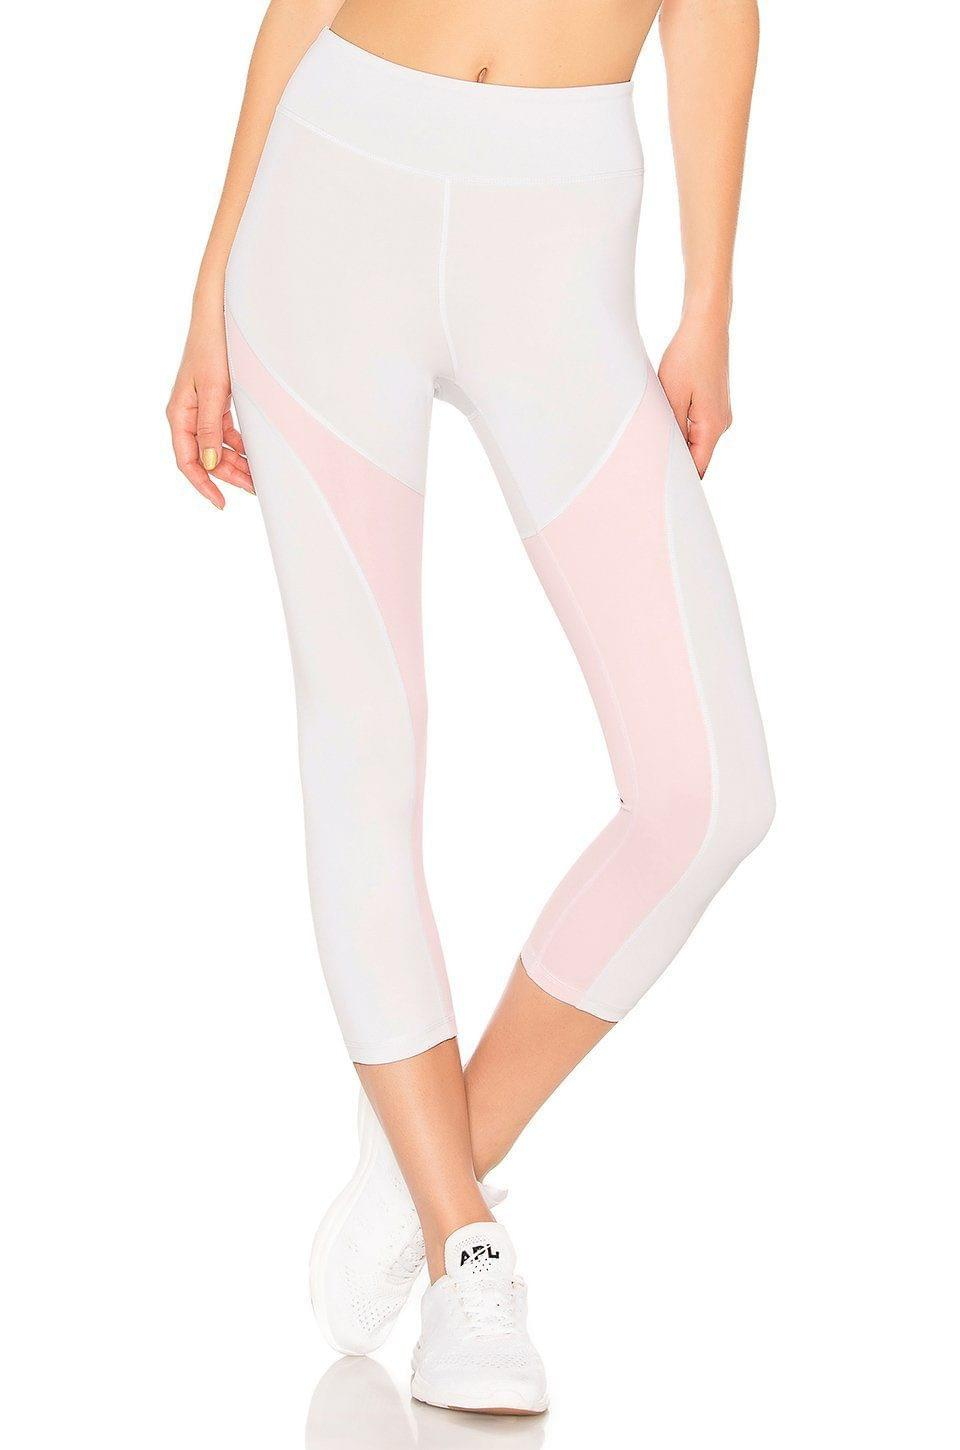 Lovewave White & Peach Leggings Brand New! Large - Your Fashions For Less